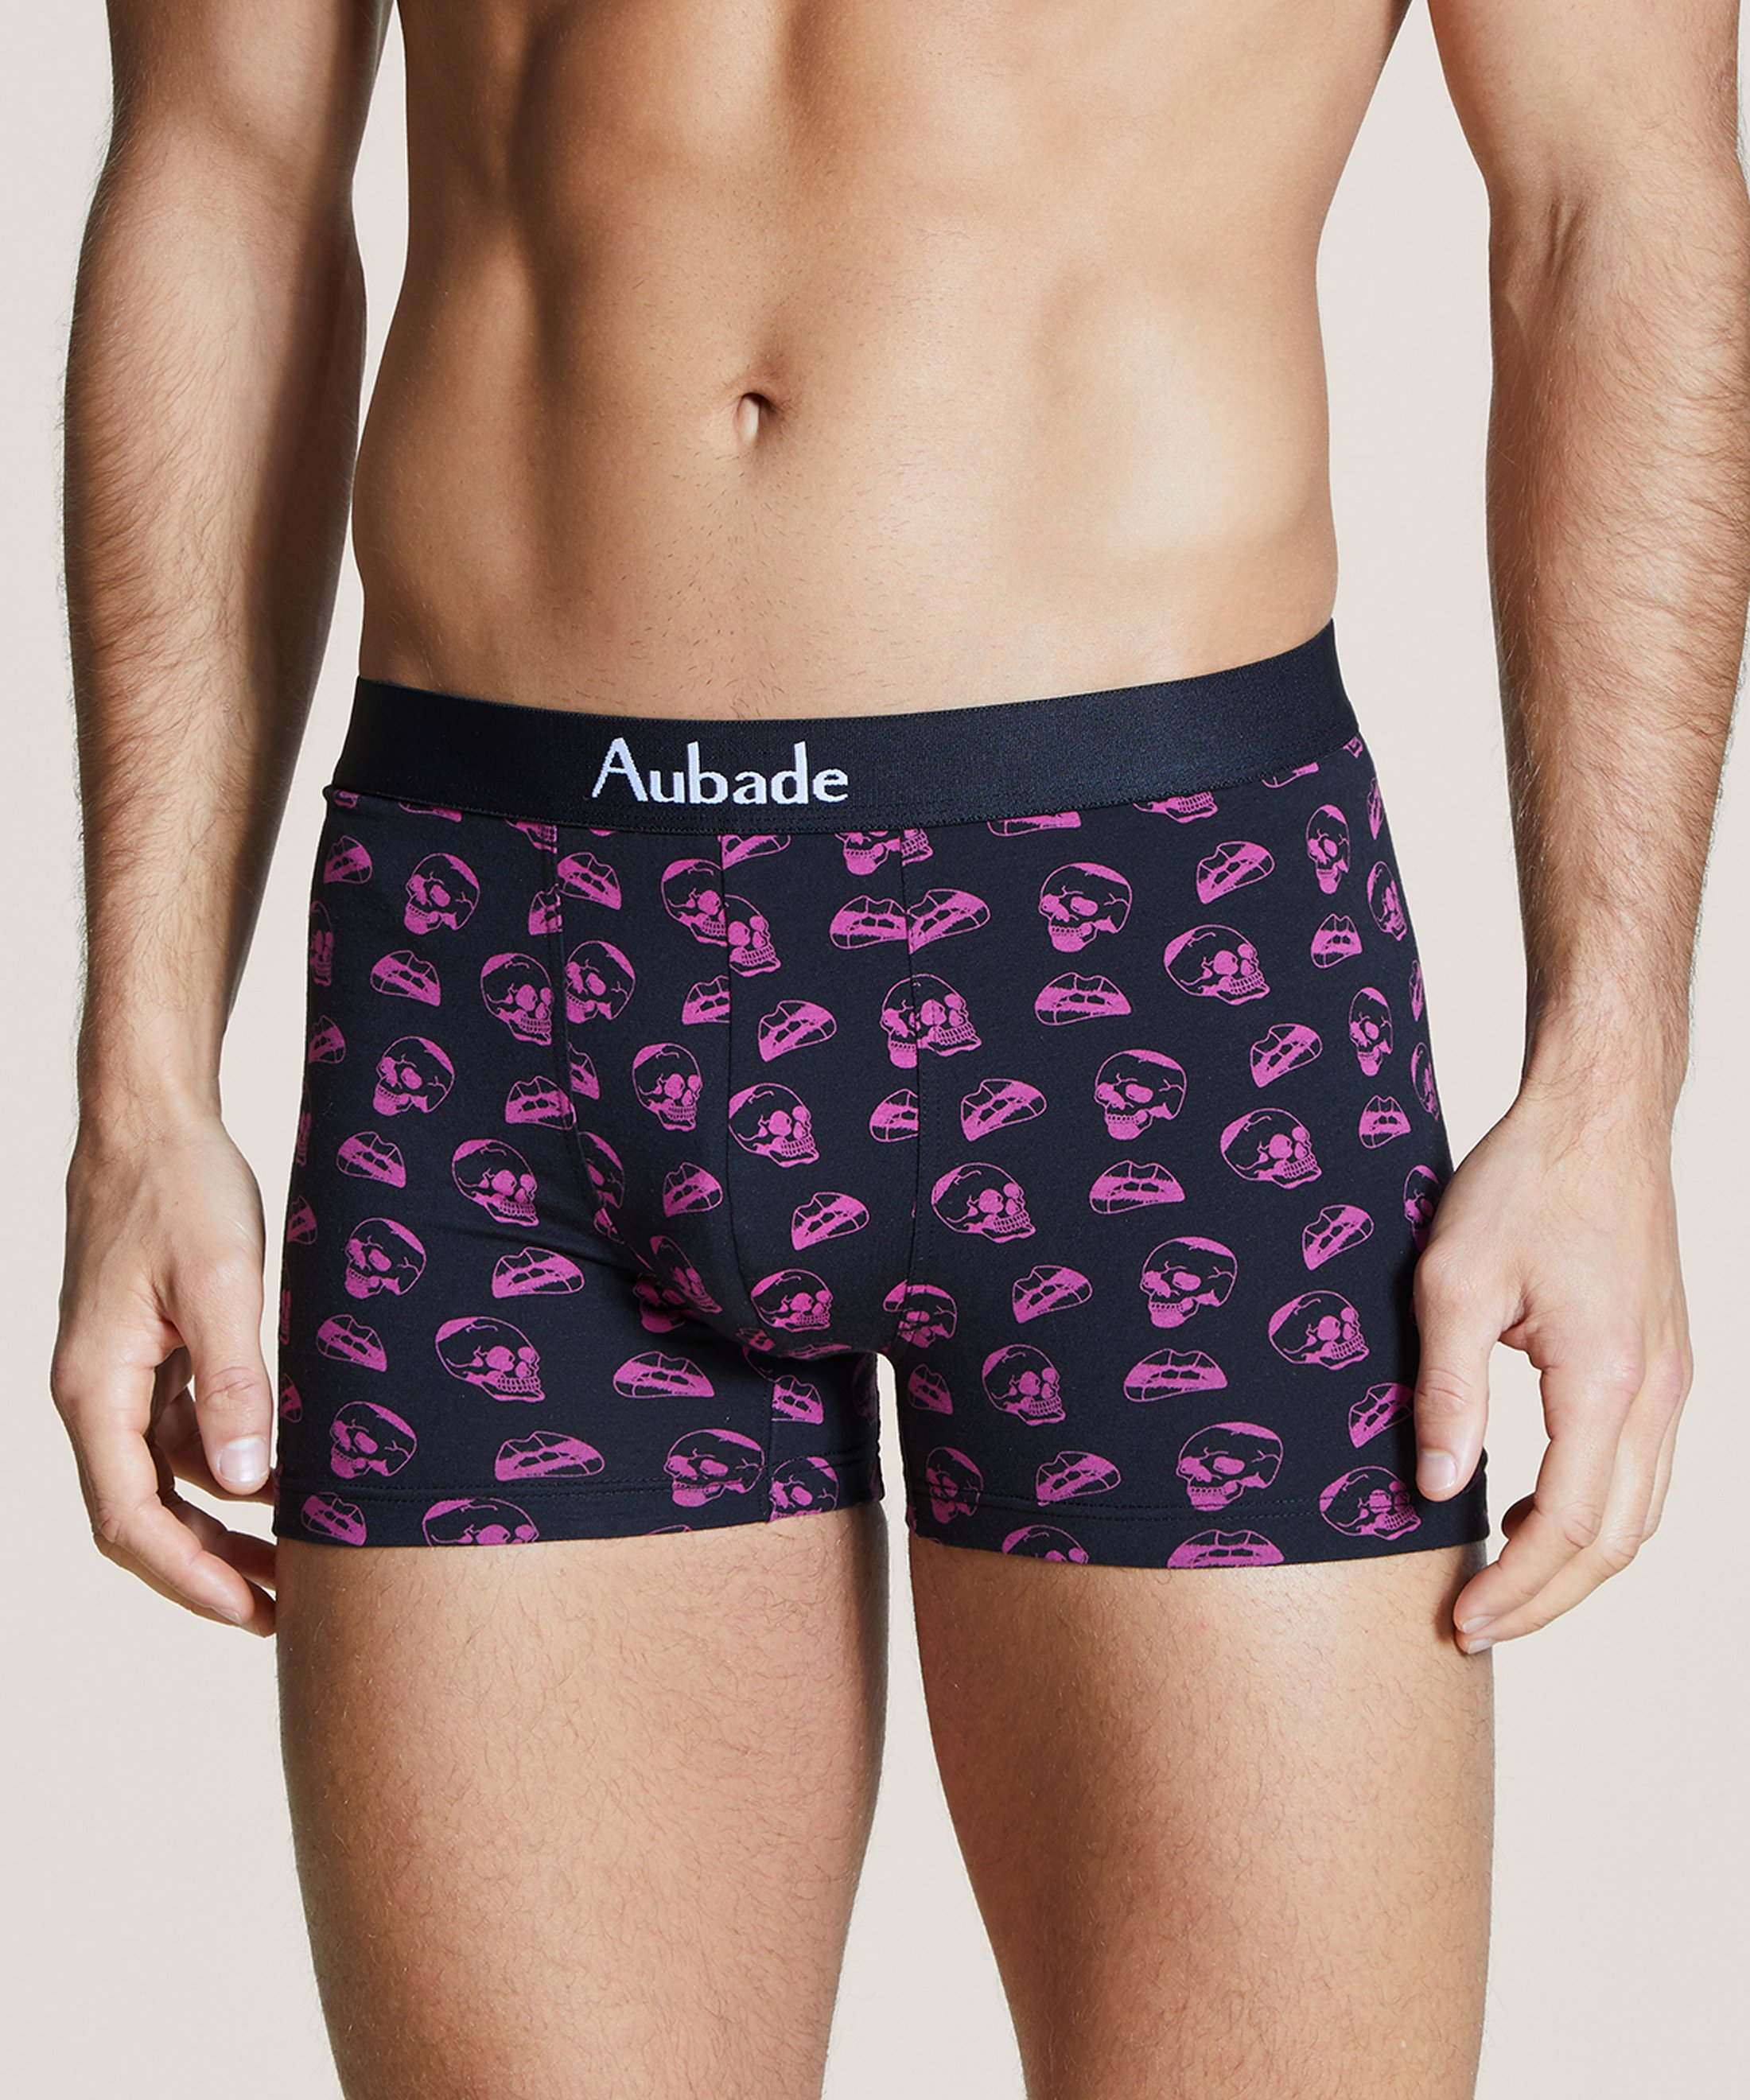 AUBADE HOMME Two boxers pack Neon Skull Black and Plain Grey | Aubade